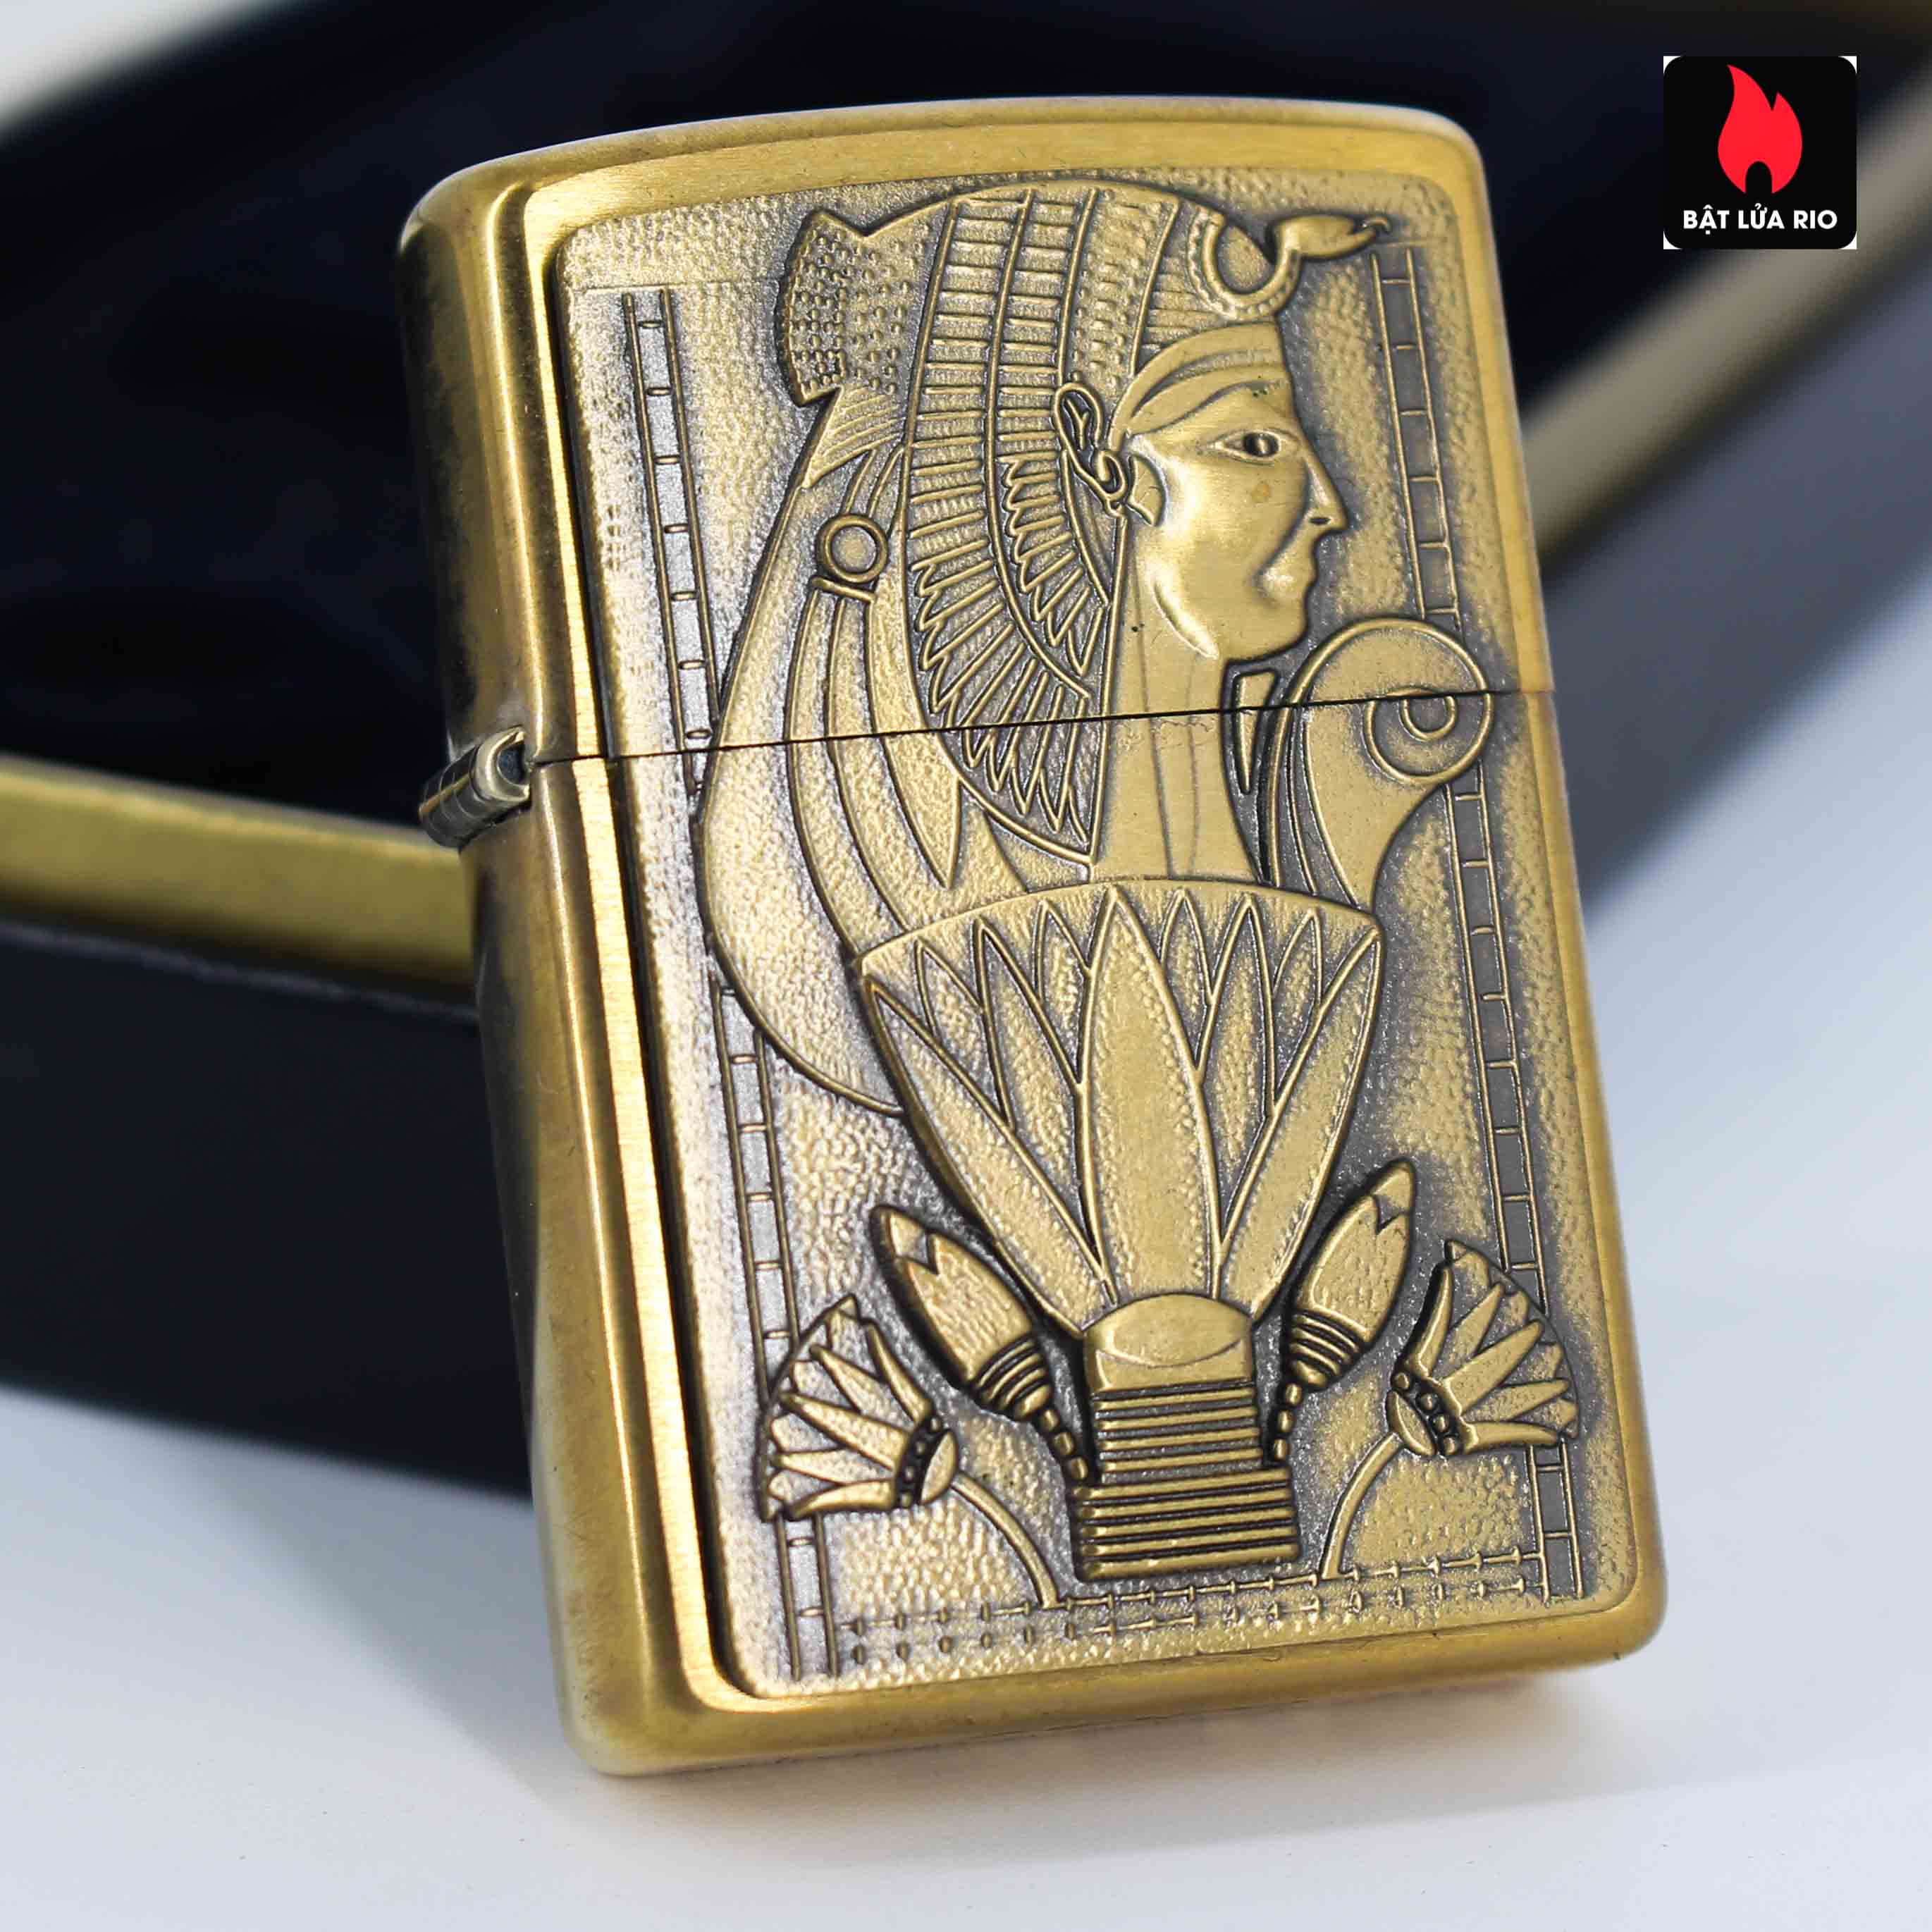 Zippo Set 1998-1999 - Zippo Treasures From The Tomb 4